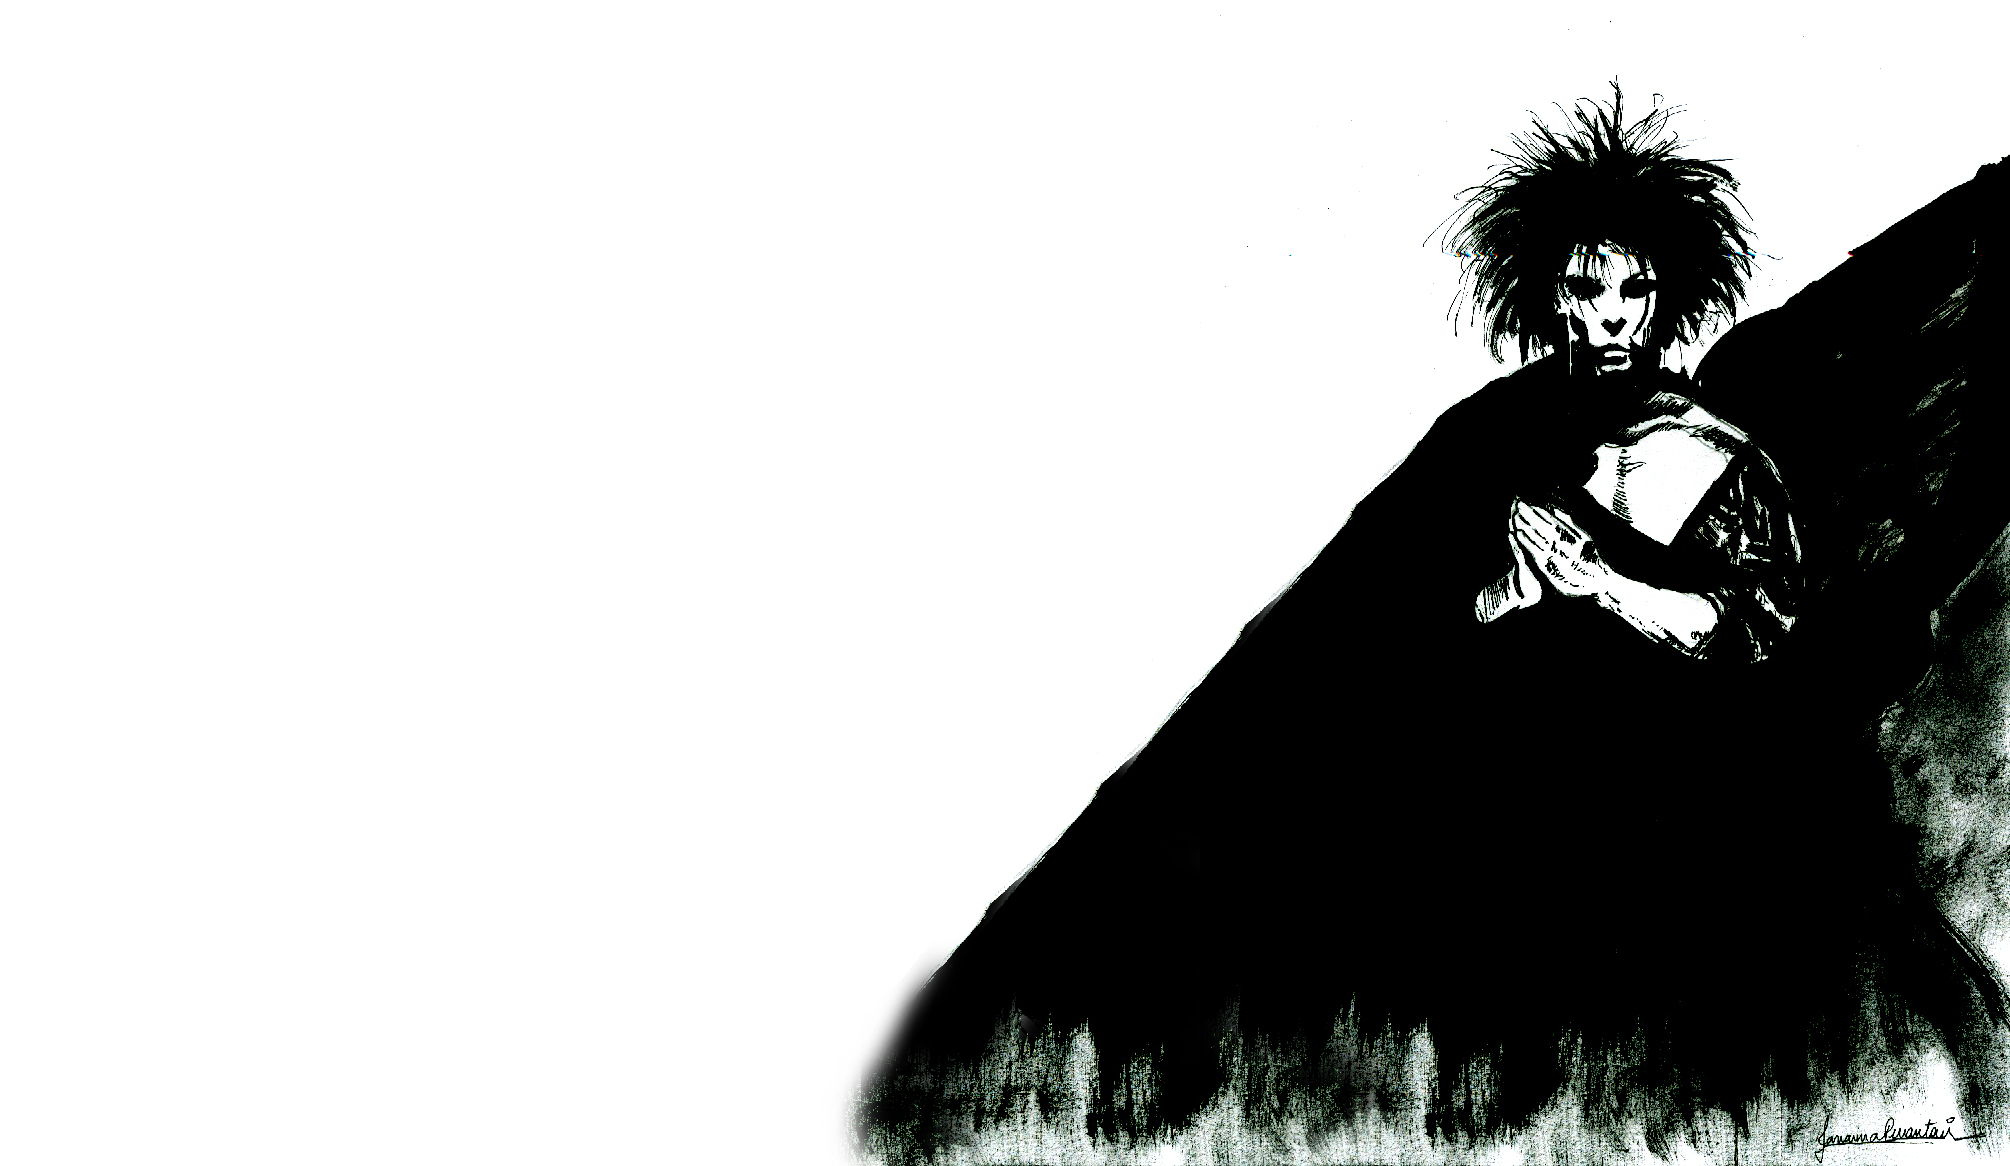 Joker Quotes Wallpaper Hd The Sandman Full Hd Wallpaper And Background Image